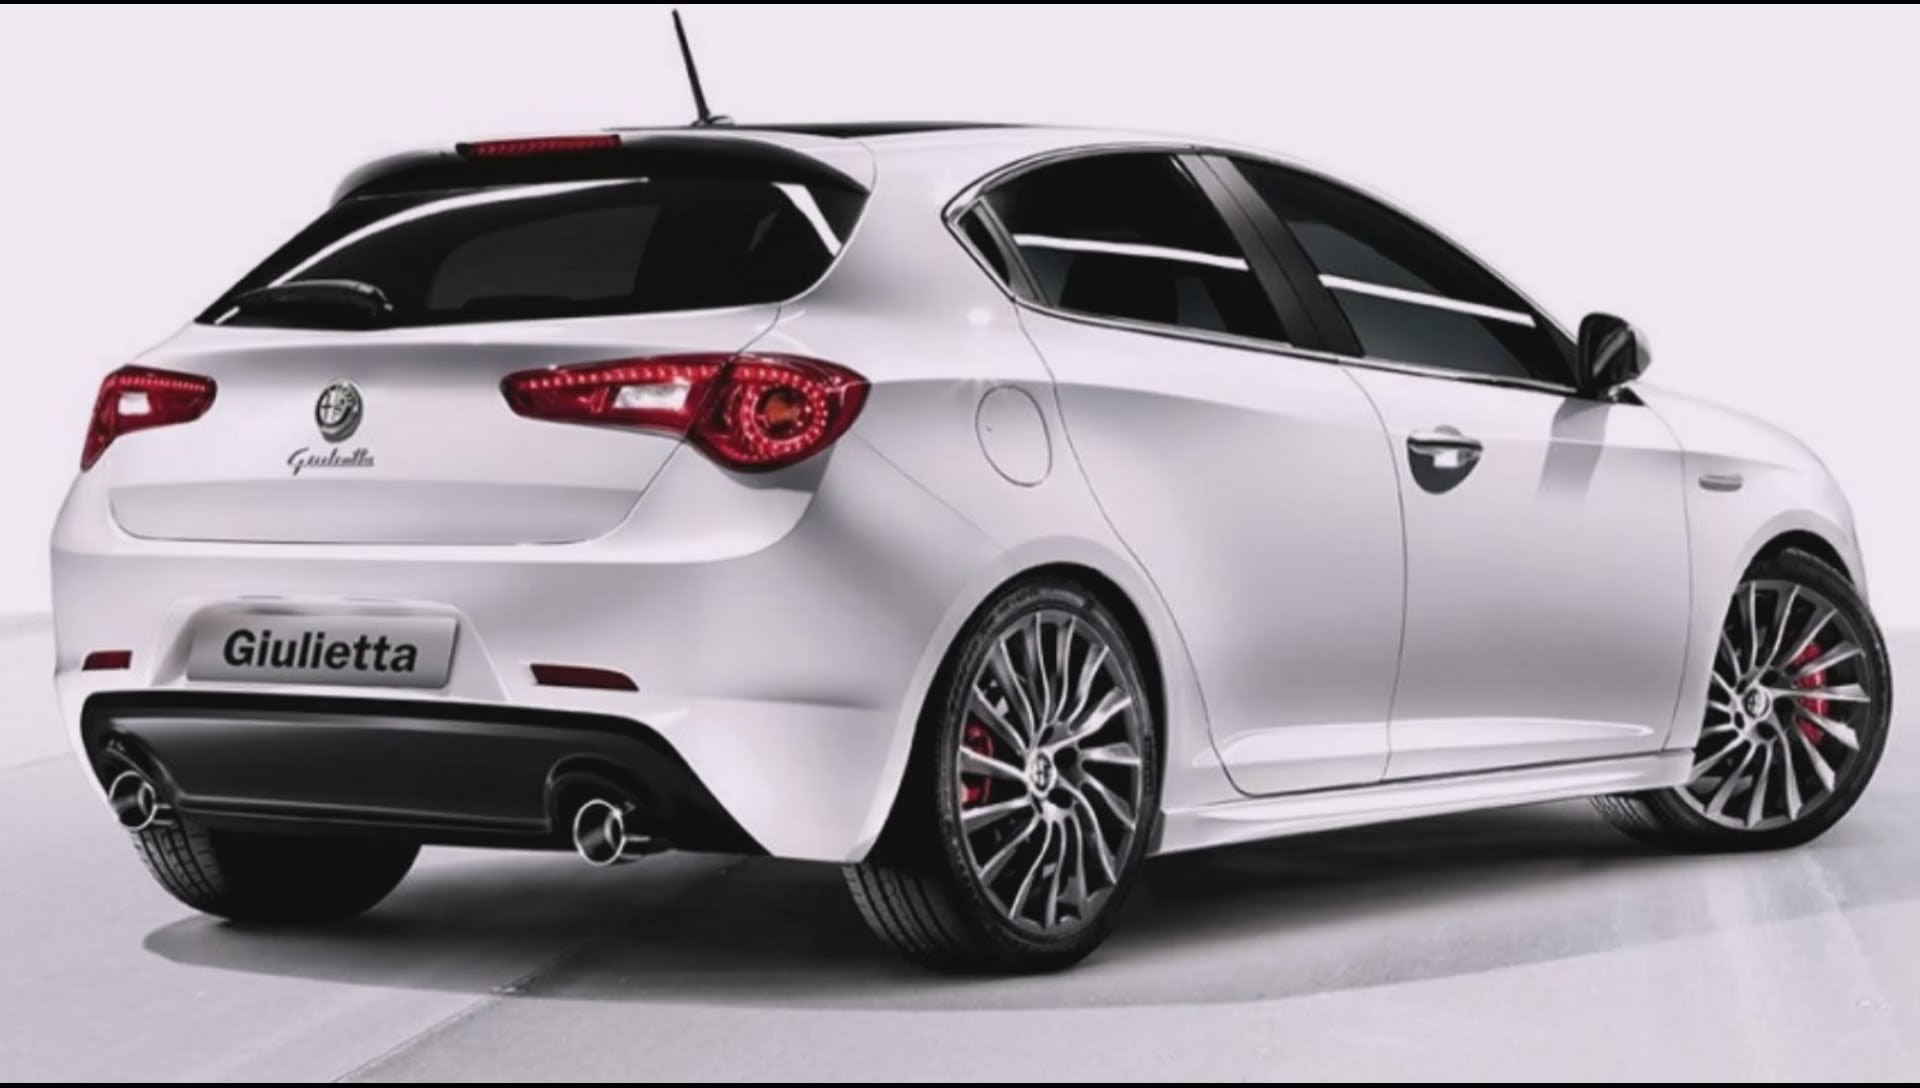 Alfa Romeo Giulietta 2010 Wiring Diagram Library 33 Pdf Manuals Free Download Ar Manual Fault